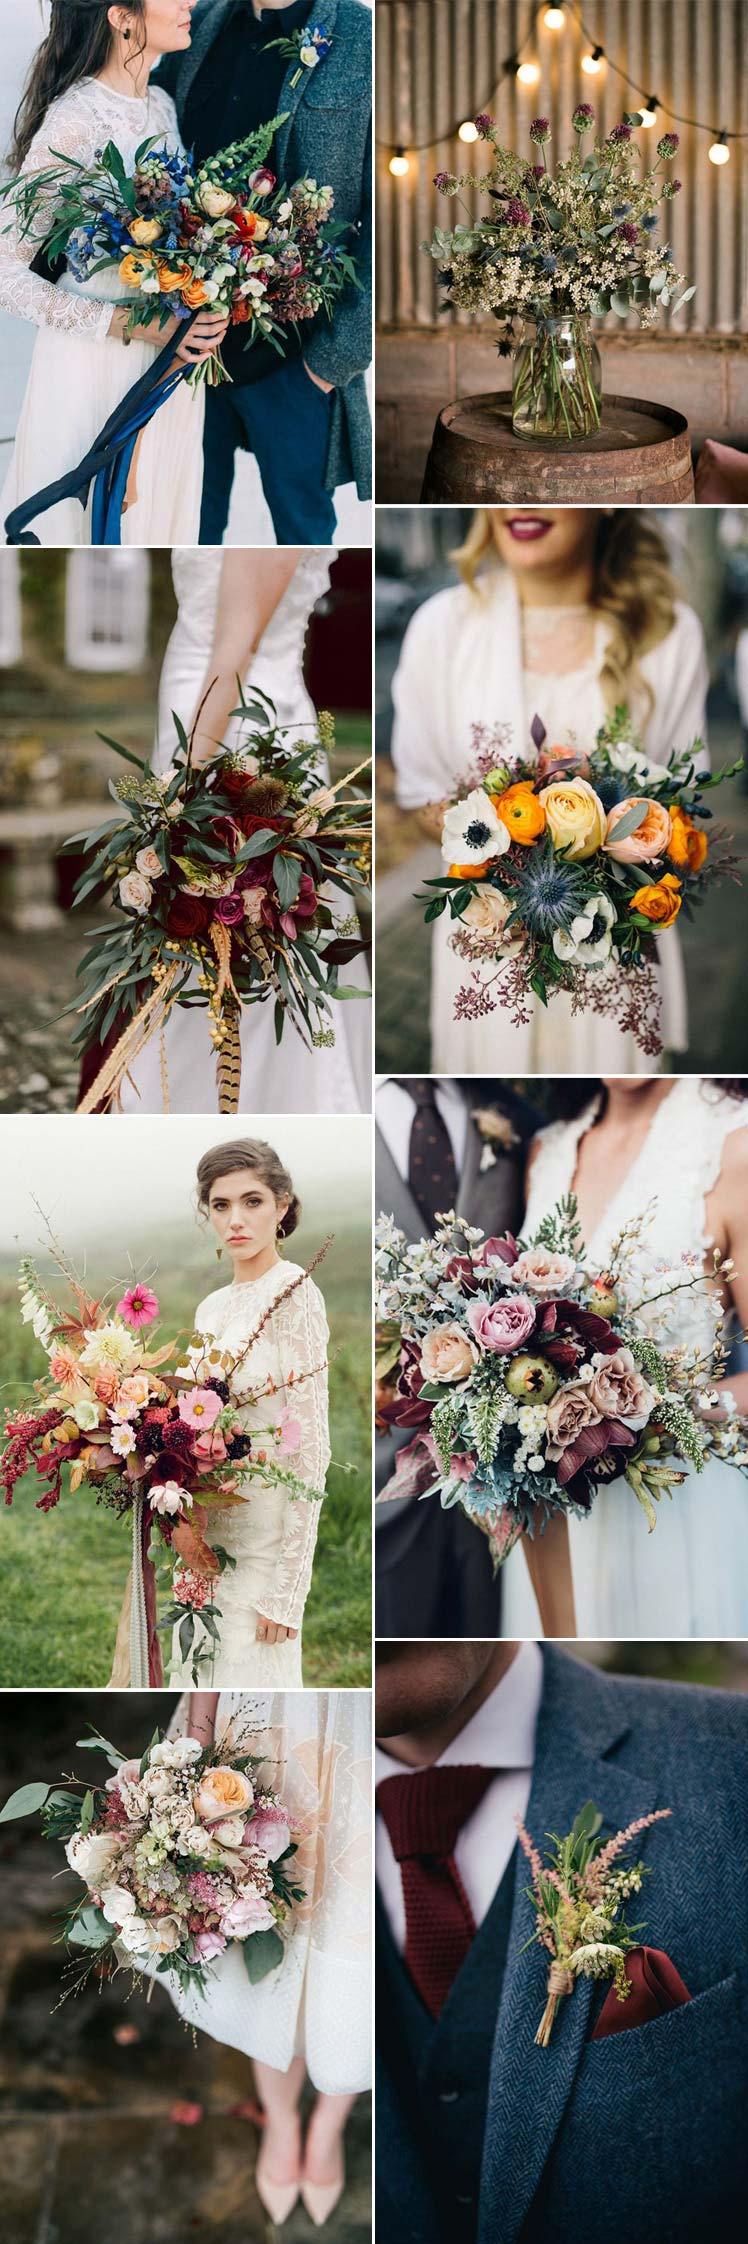 Gorgeous Flowers for an Autumn wedding